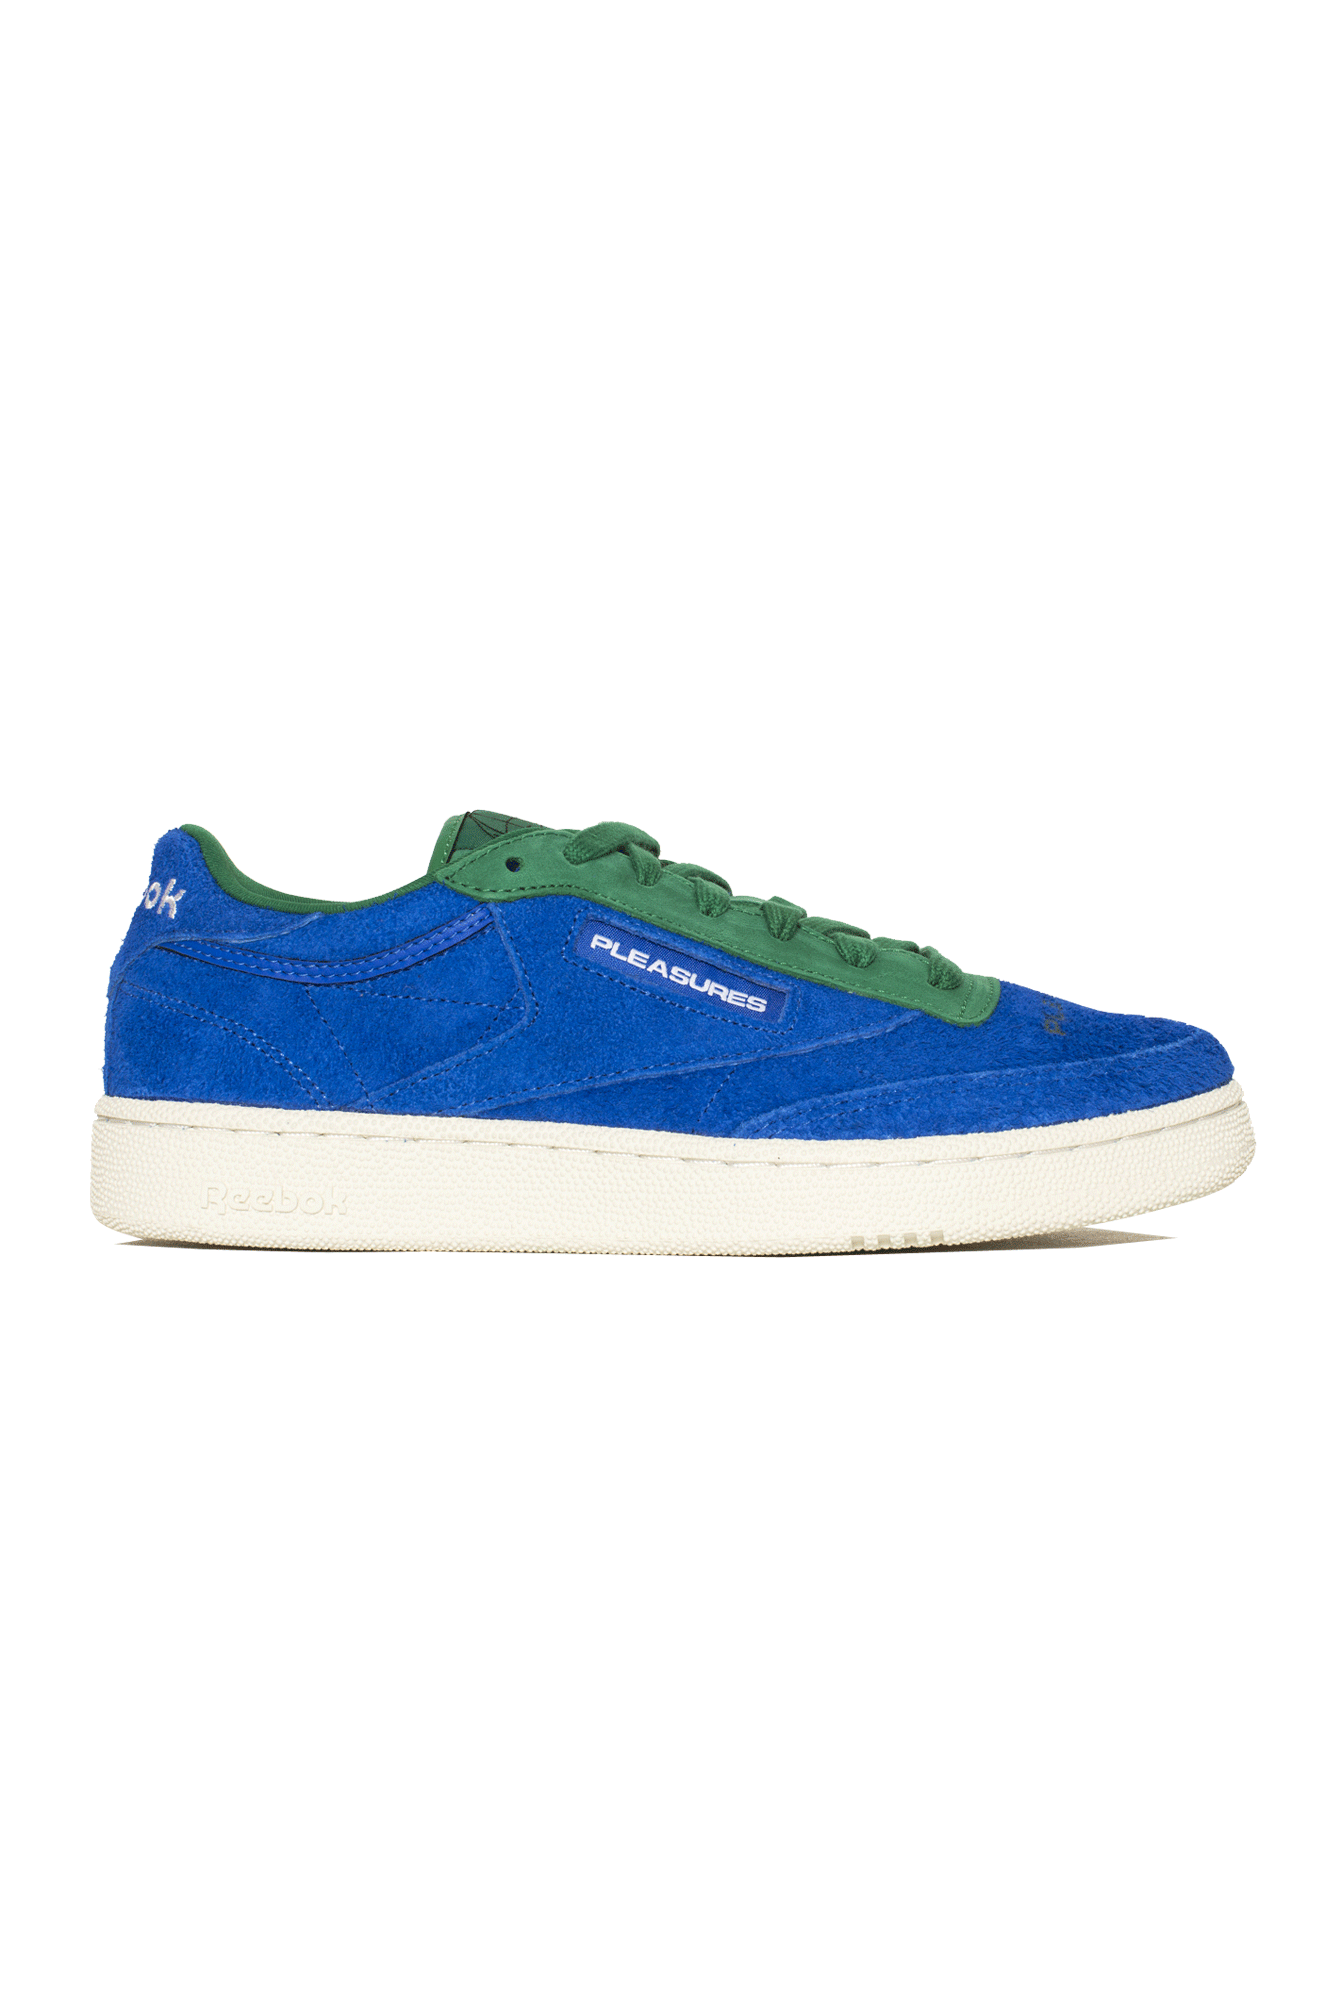 Pleasures X Reebok CLUB C Shoe Blue